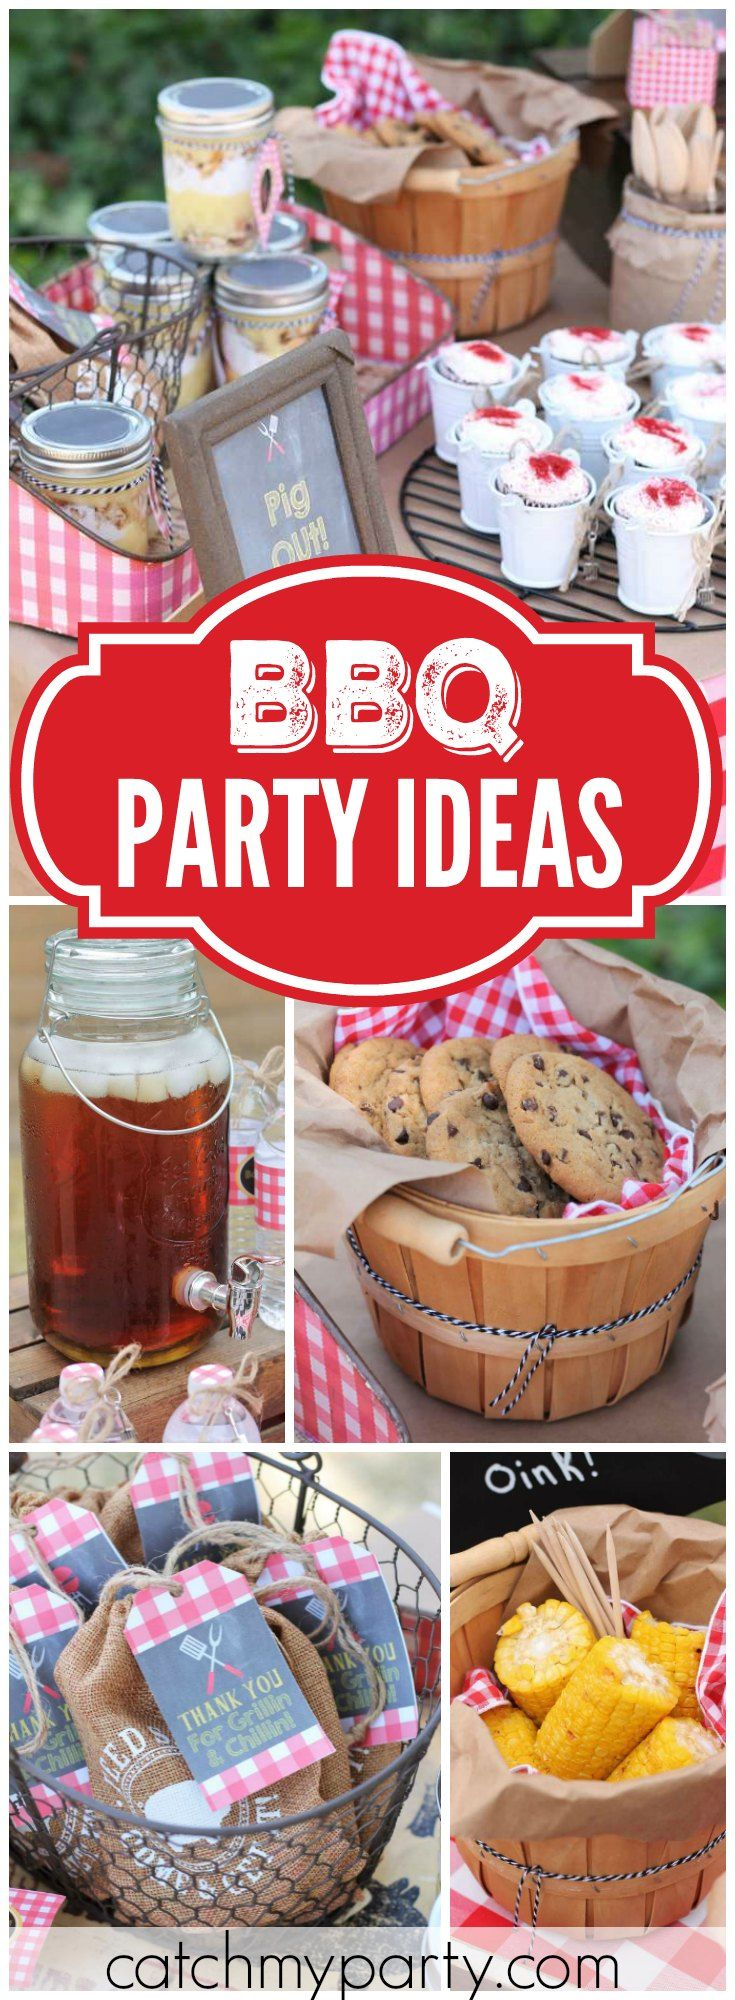 154 best bbq party theme ideas images on pinterest for Food bar party ideas